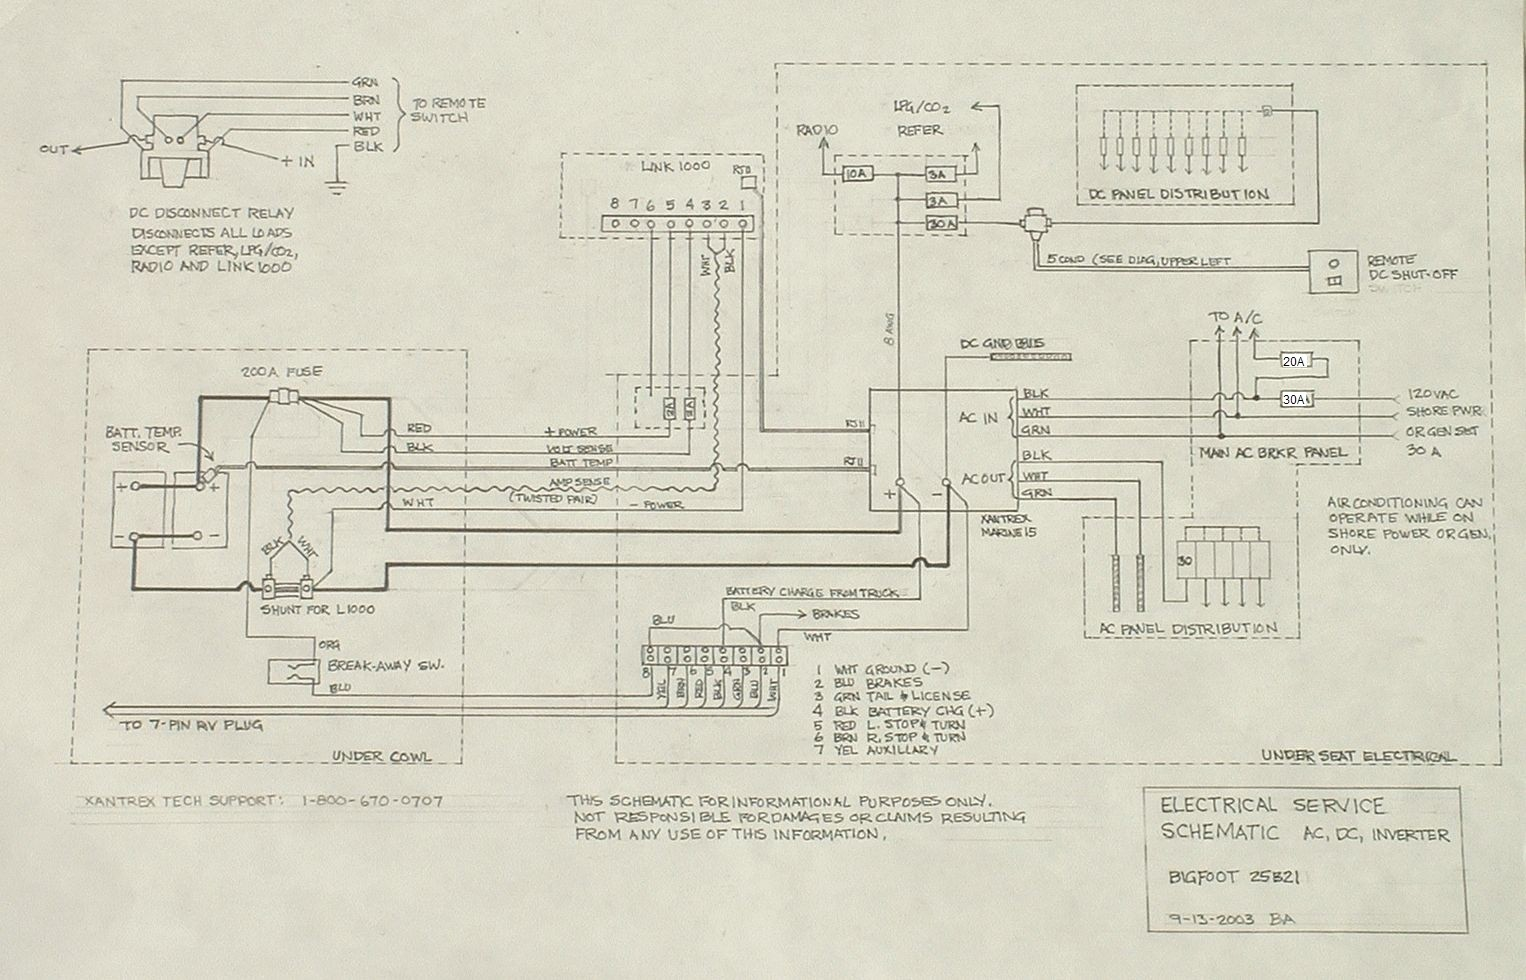 Wiring Diagram For Powerwise Battery Charger : Powerwise charger wiring diagram